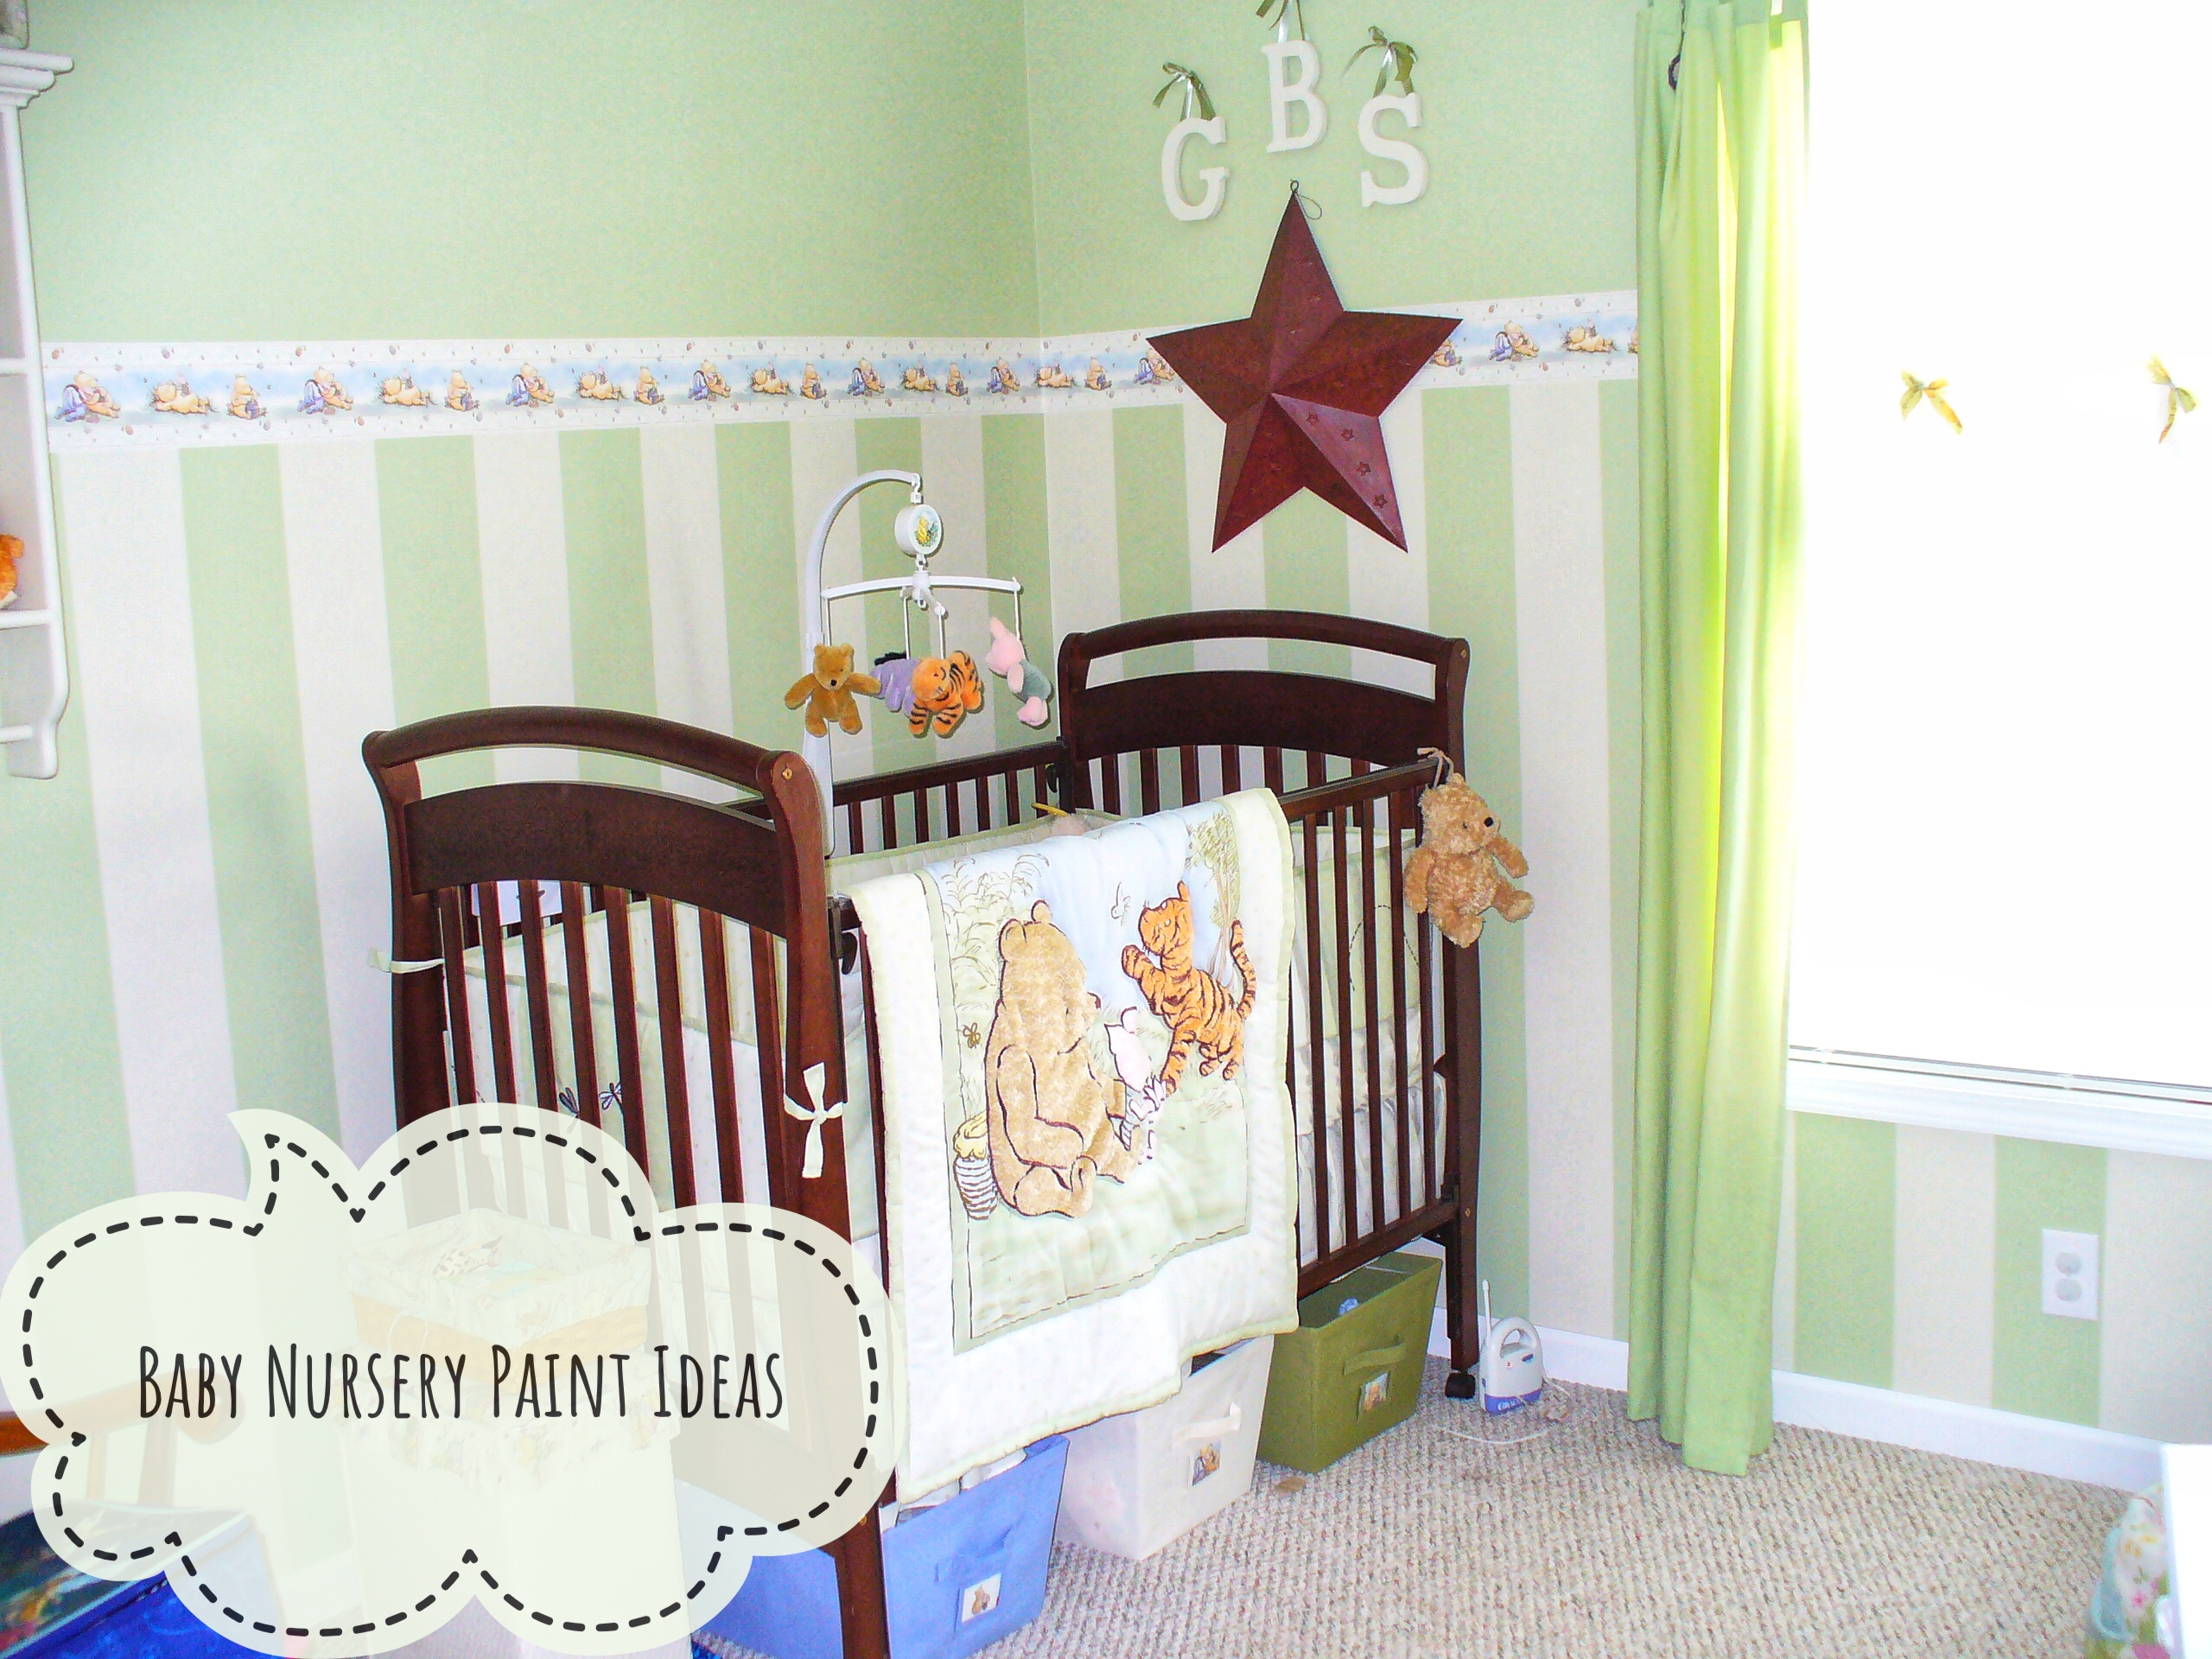 Baby Nursery Paint Ideas, Nursery Stripes